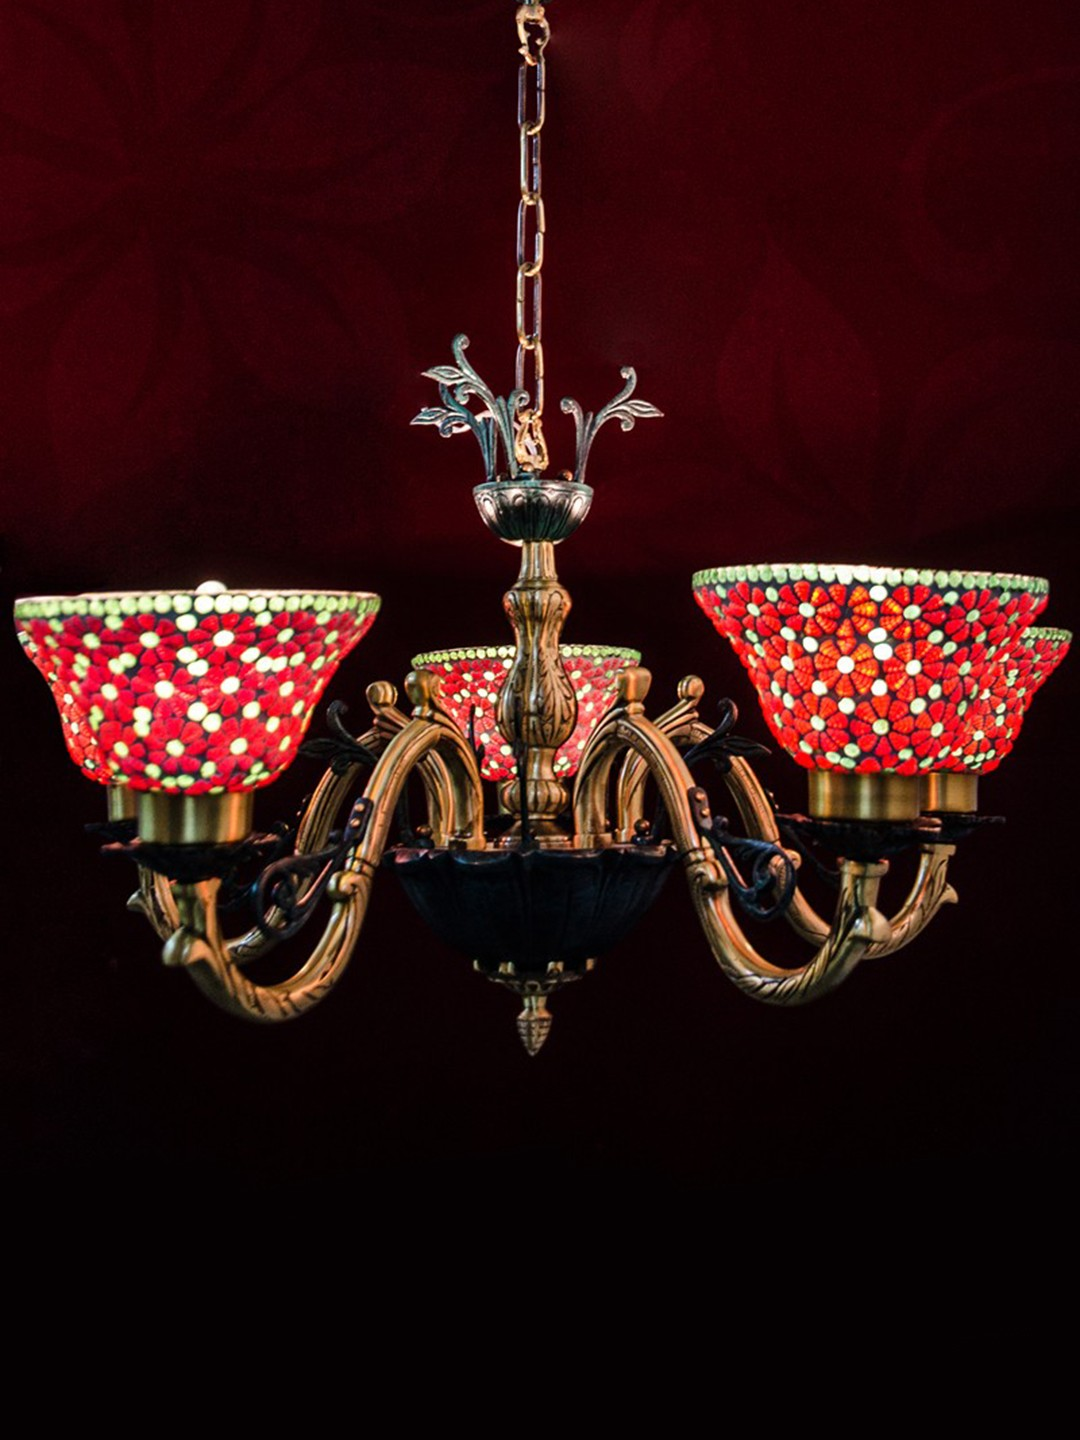 Vase red mosaic 5 light chandelier